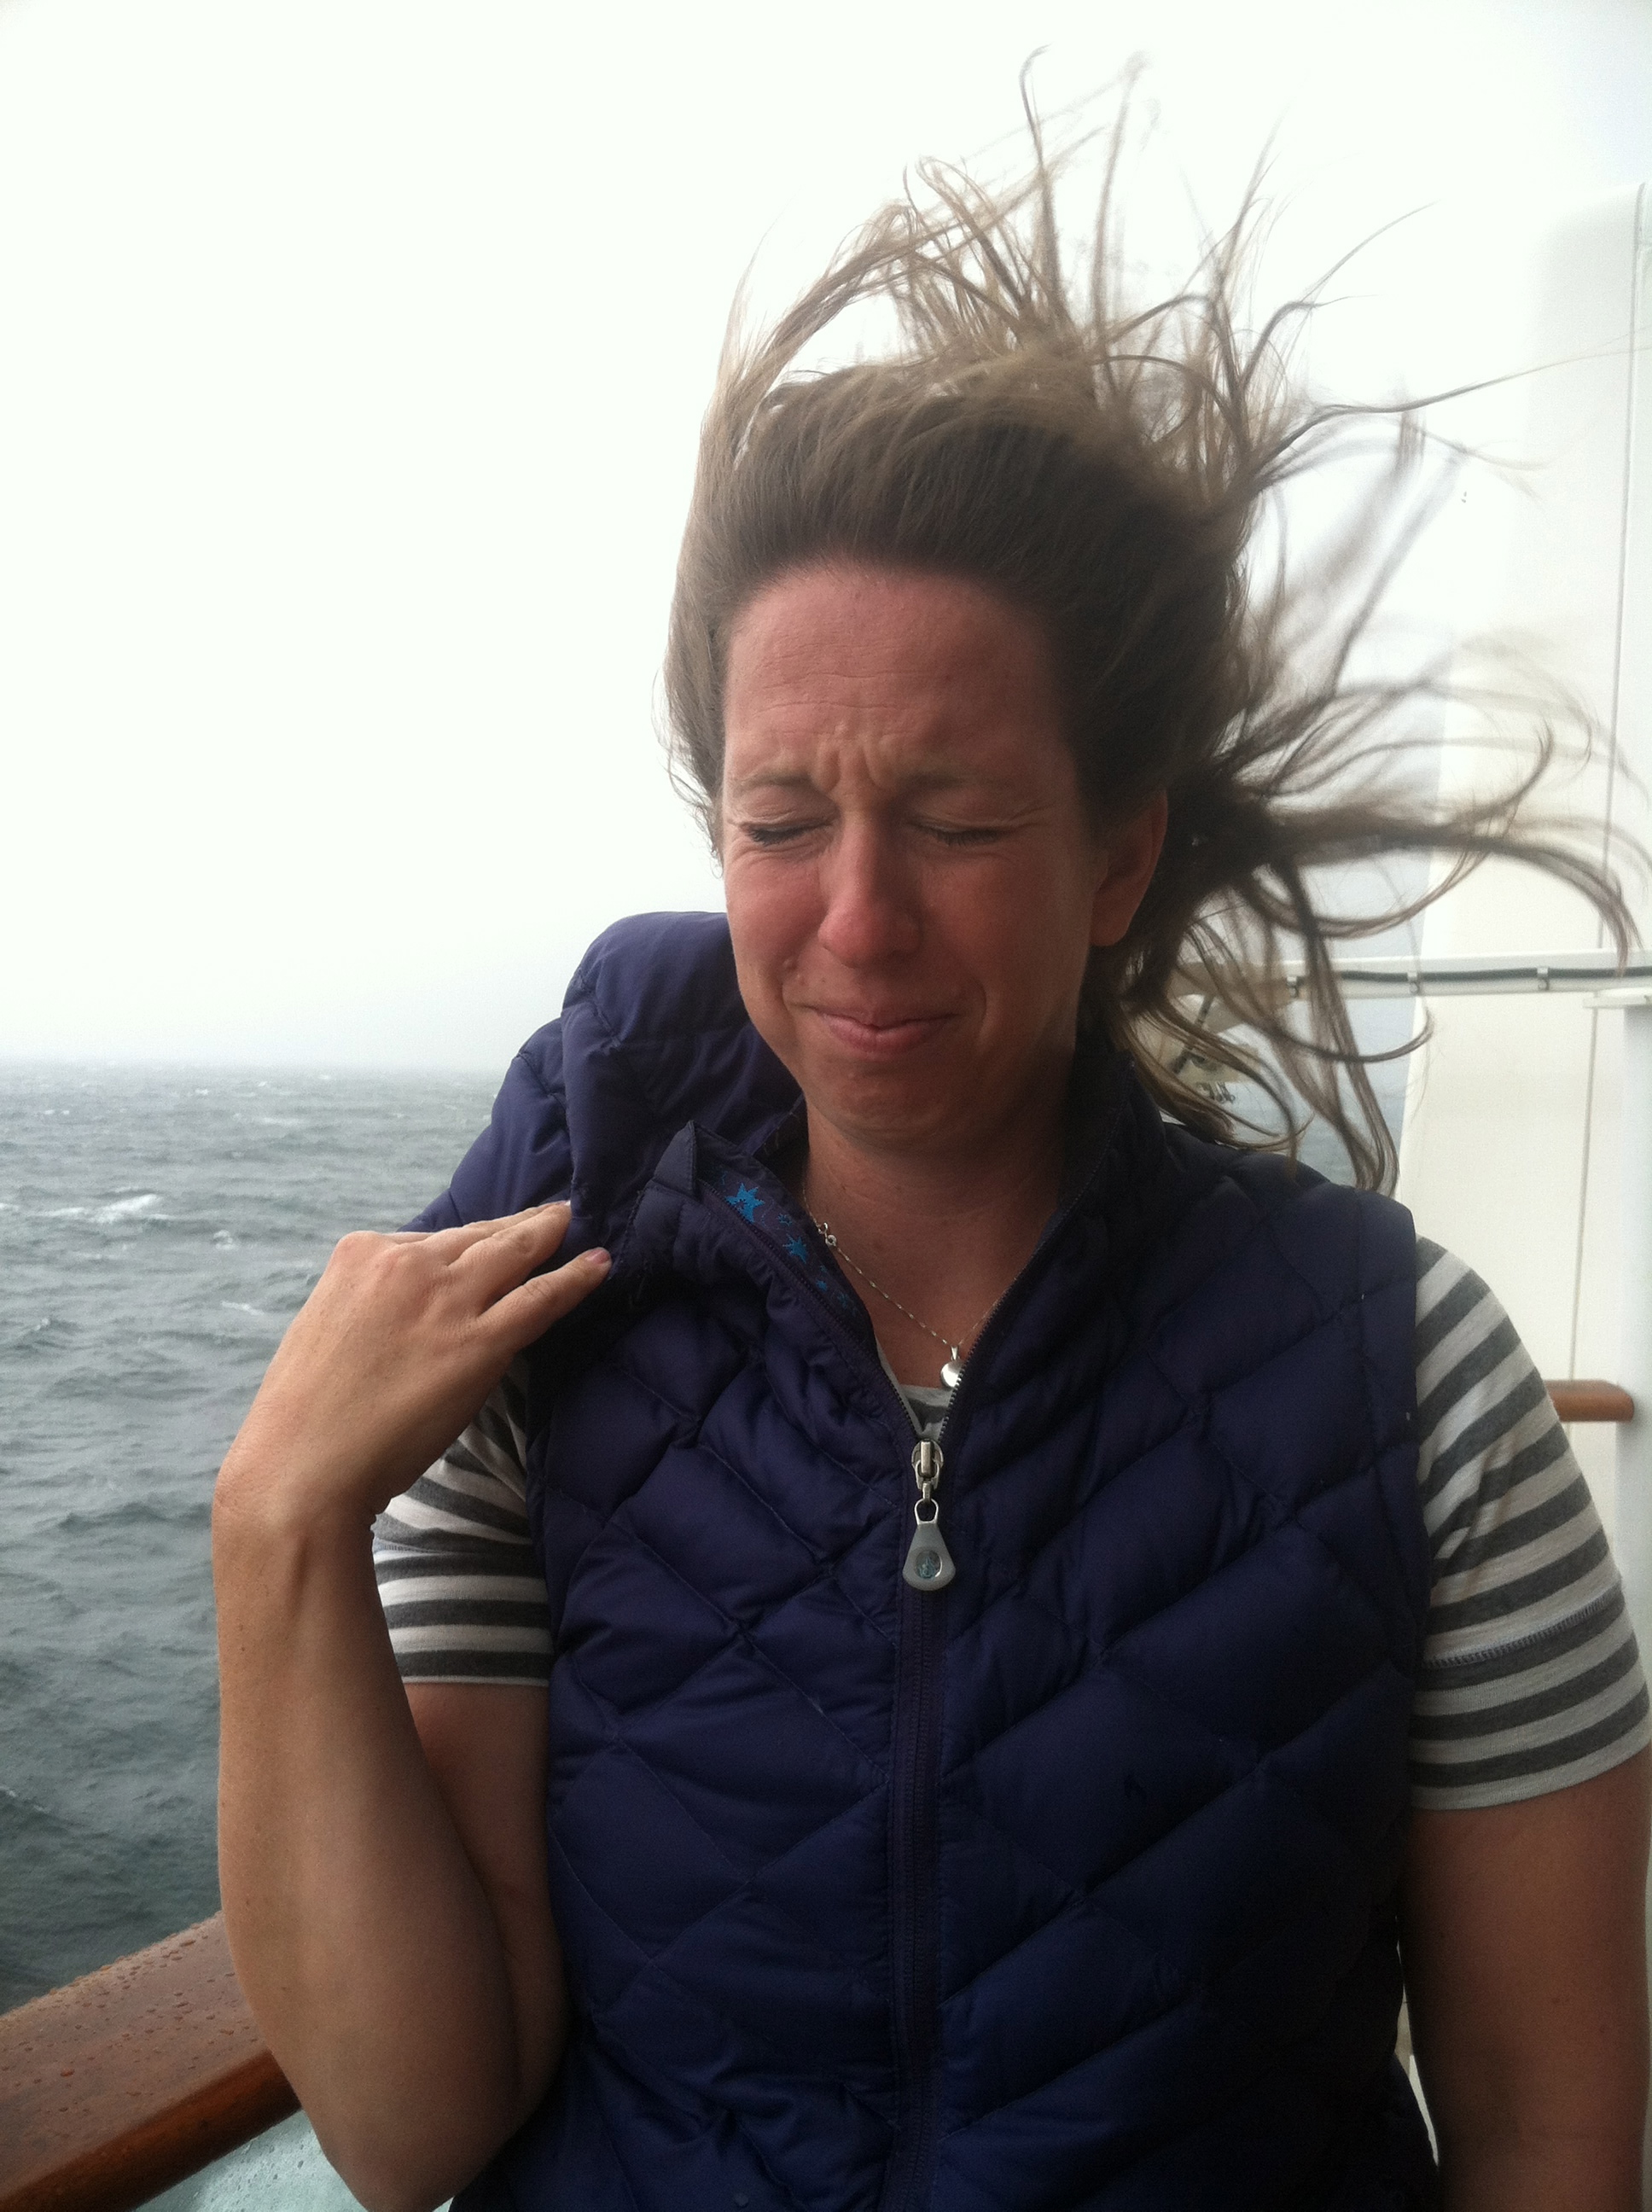 Rough day at sea